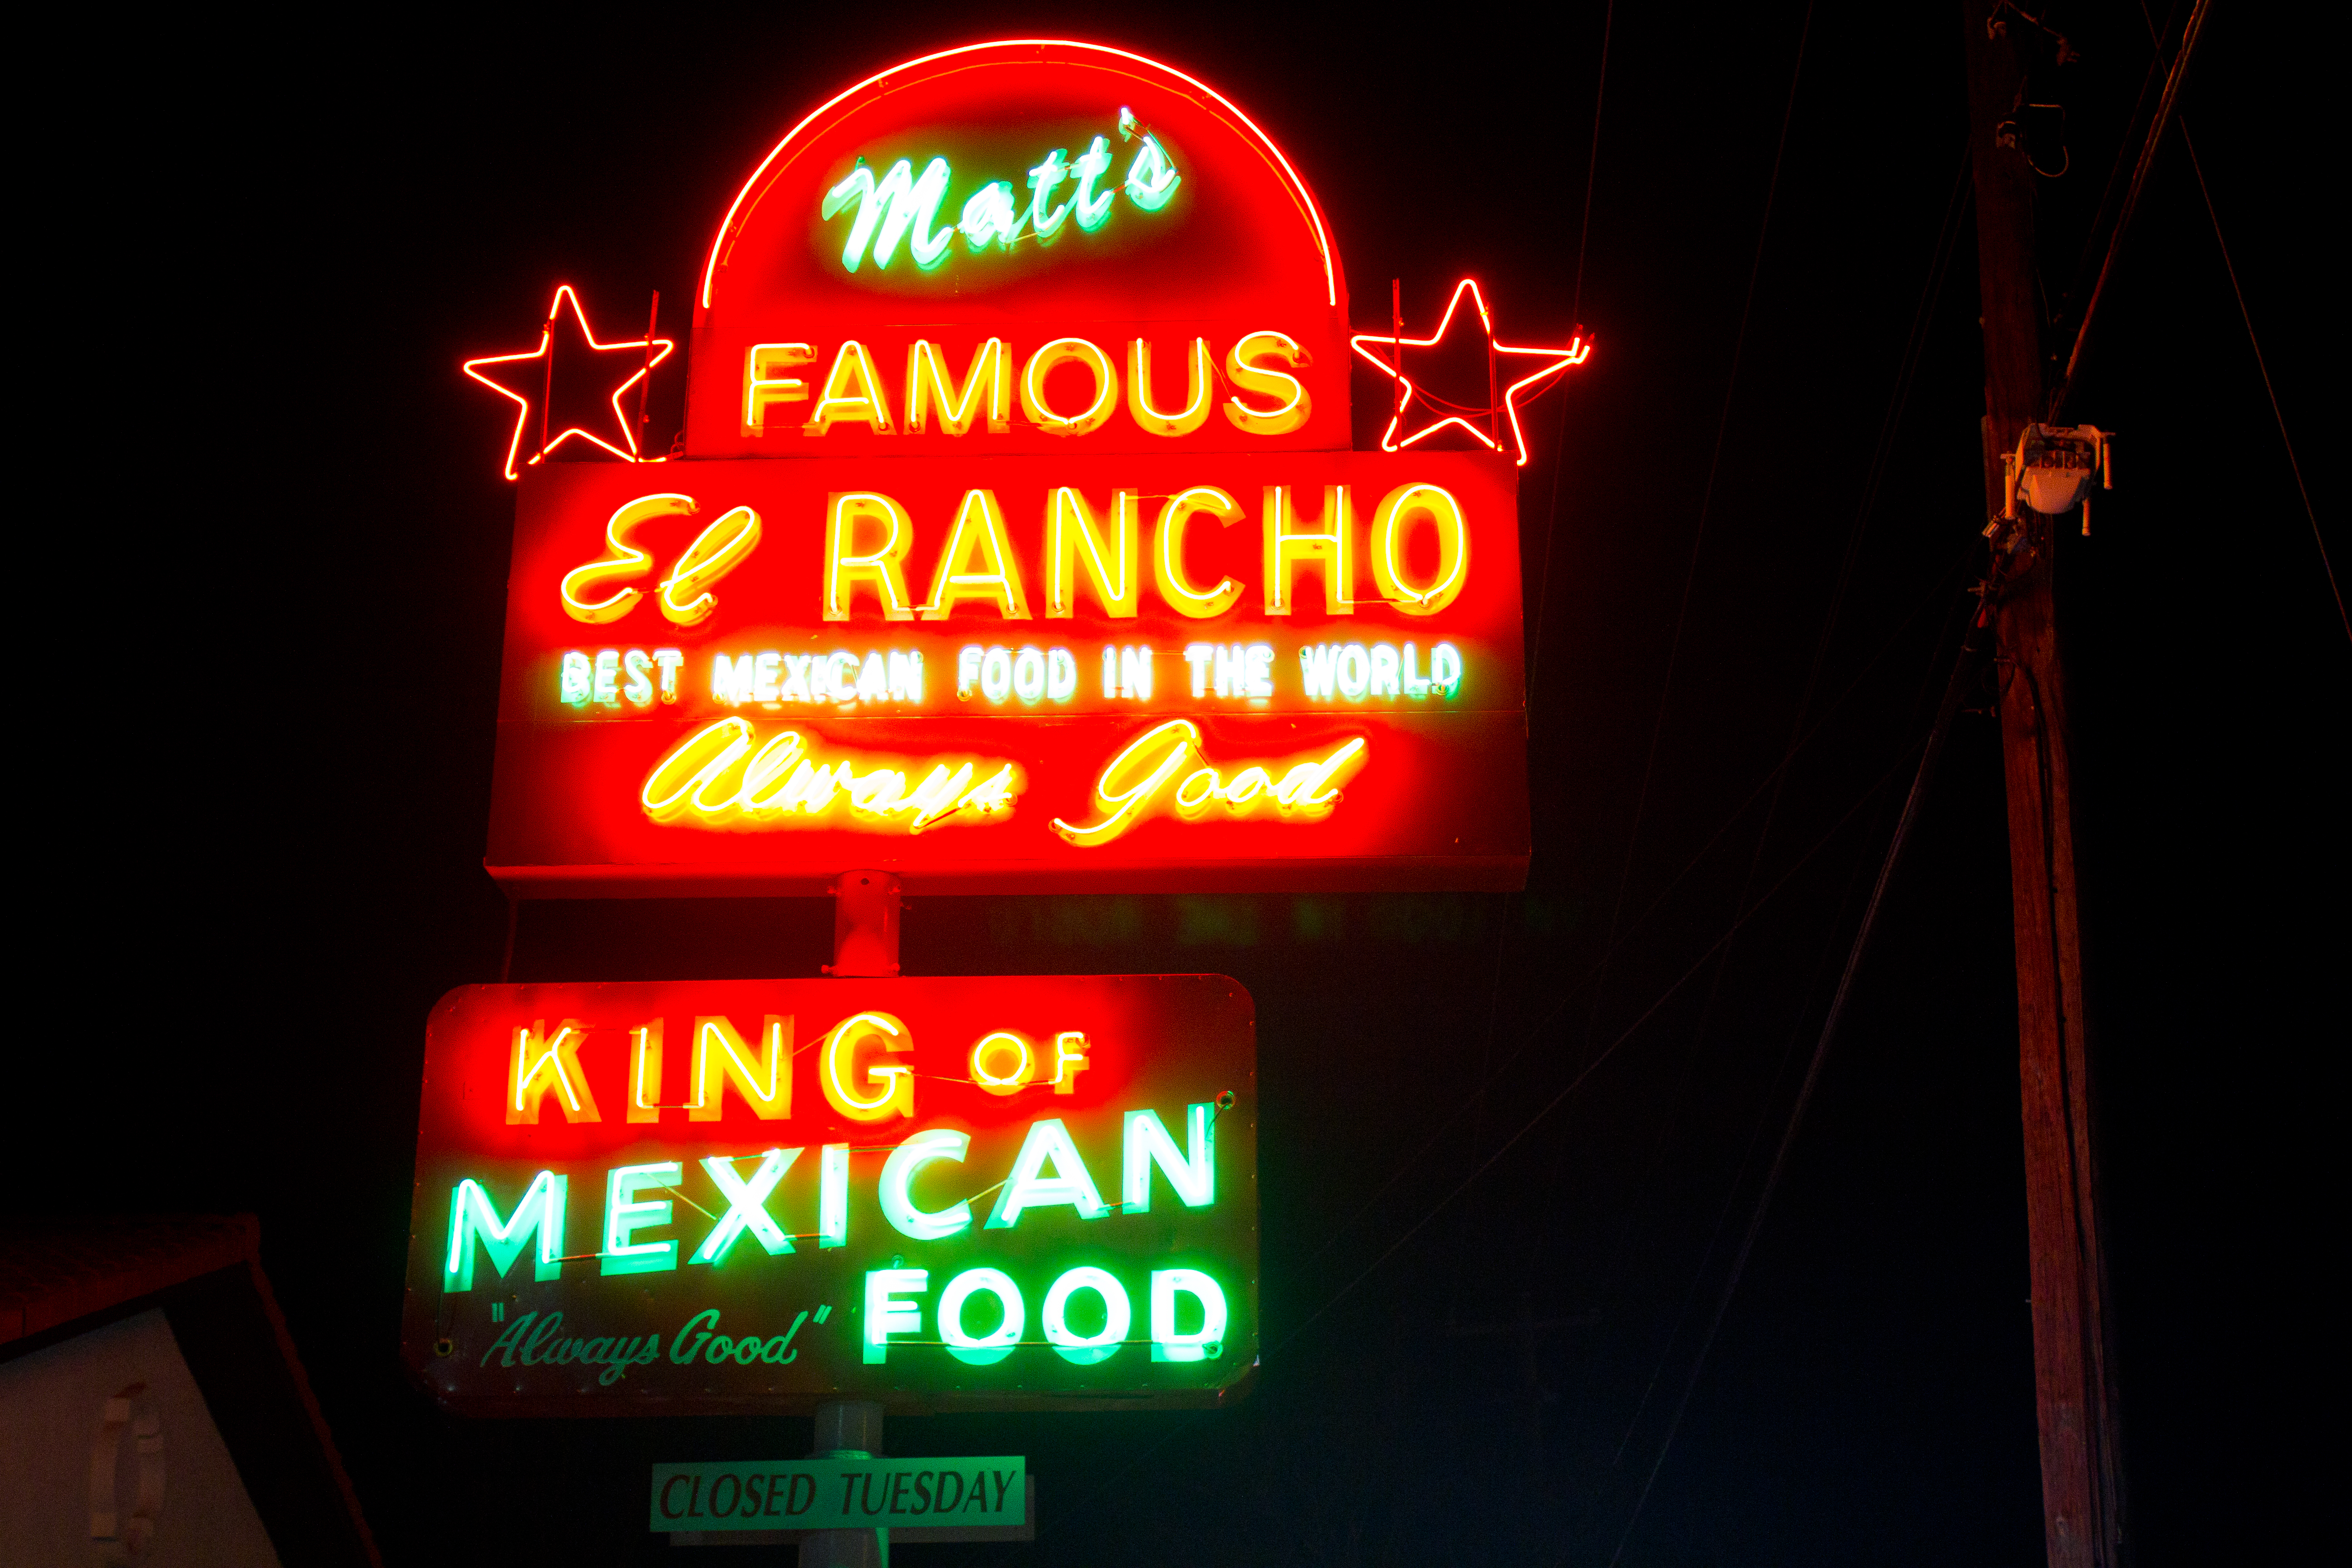 A Look at Austin's Iconic Neon Restaurant Signs - Eater Austin